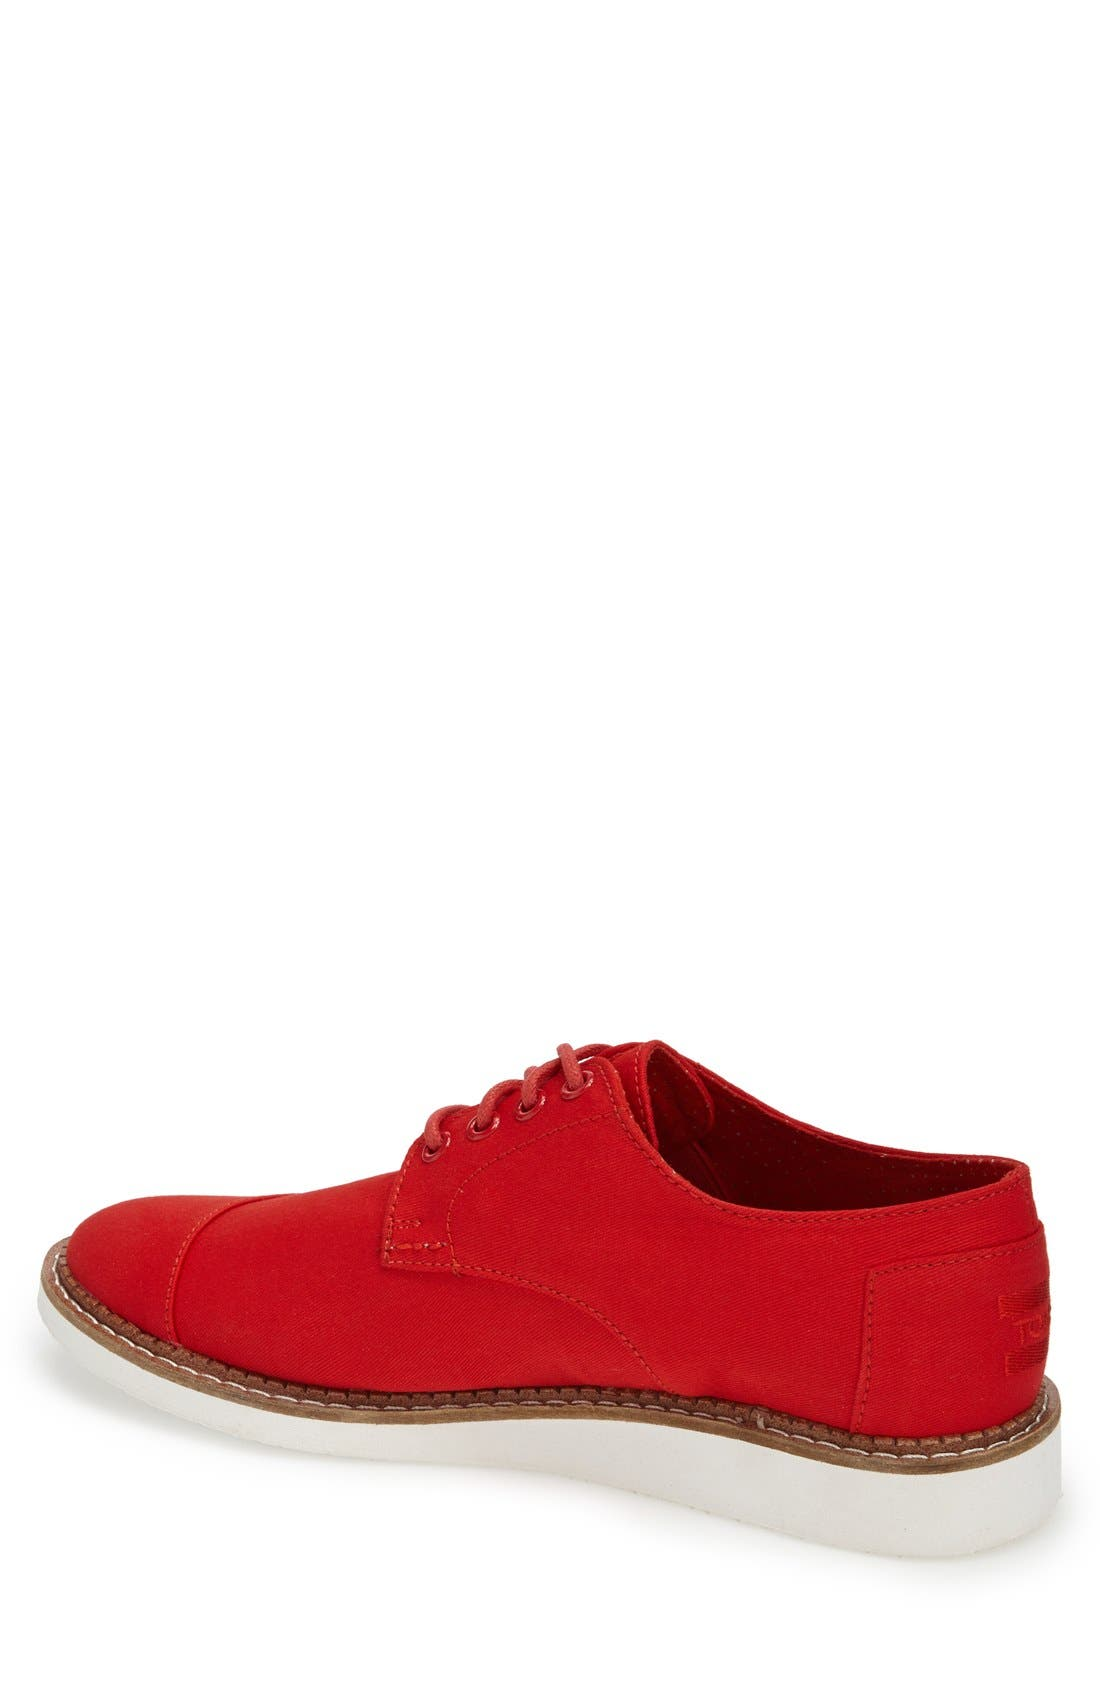 'Classic Brogue' Cotton Twill Derby,                             Alternate thumbnail 30, color,